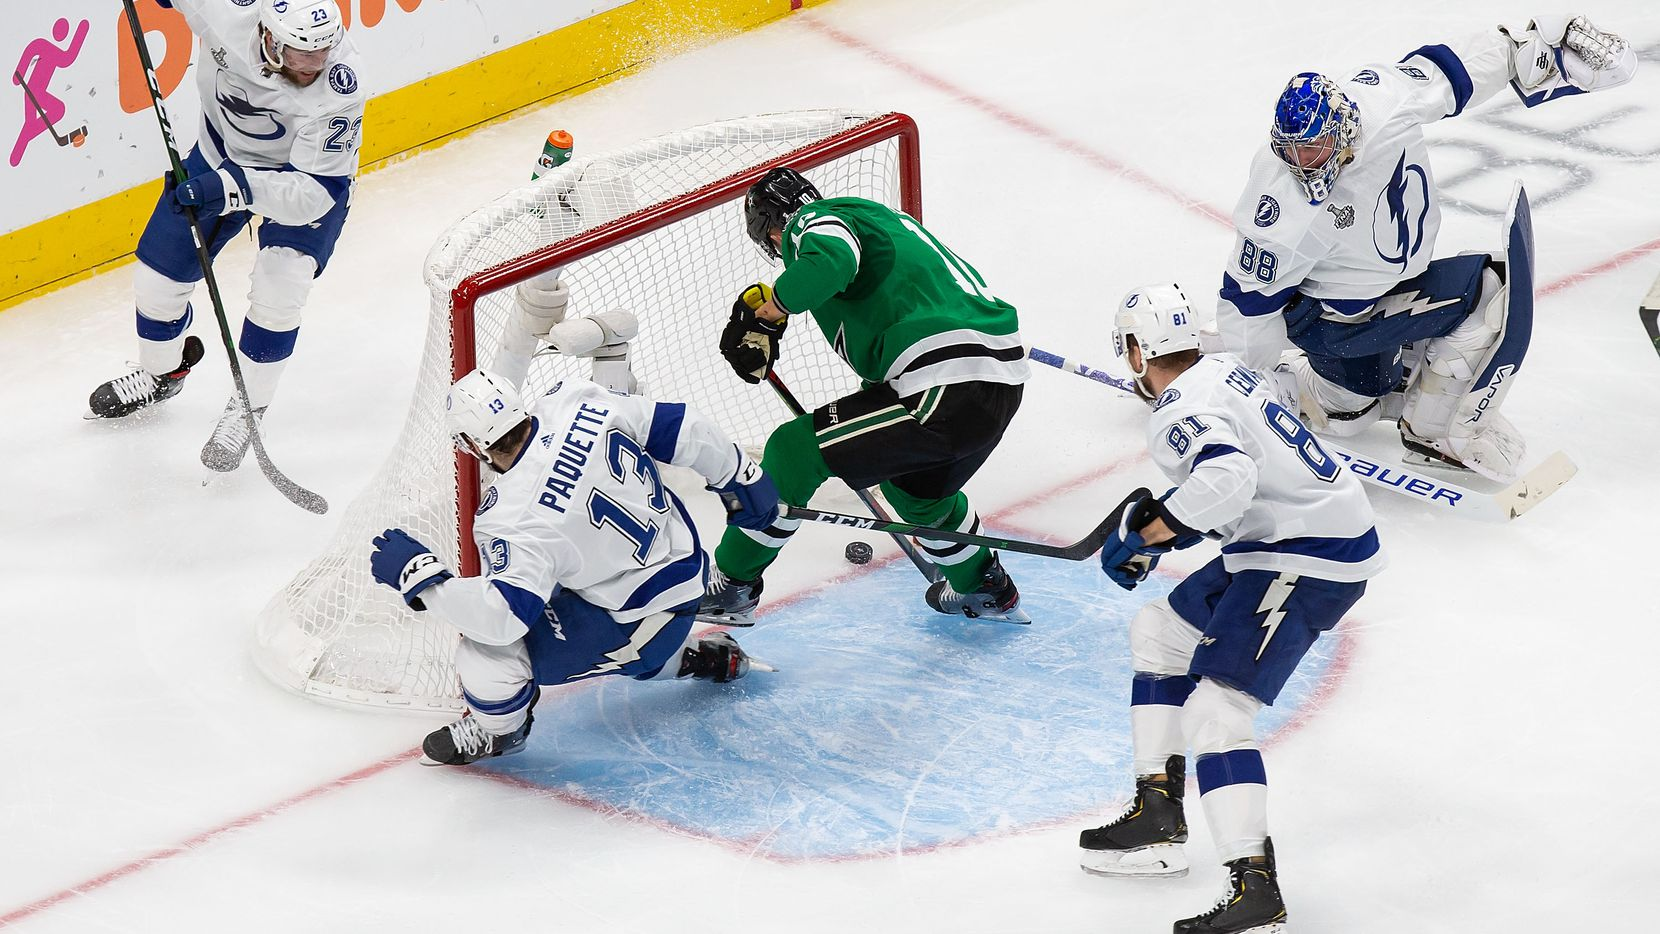 Corey Perry (10) of the Dallas Stars scores against goaltender Andrei Vasilevskiy (88) of the Tampa Bay Lightning during Game Four of the Stanley Cup Final at Rogers Place in Edmonton, Alberta, Canada on Friday, September 25, 2020.